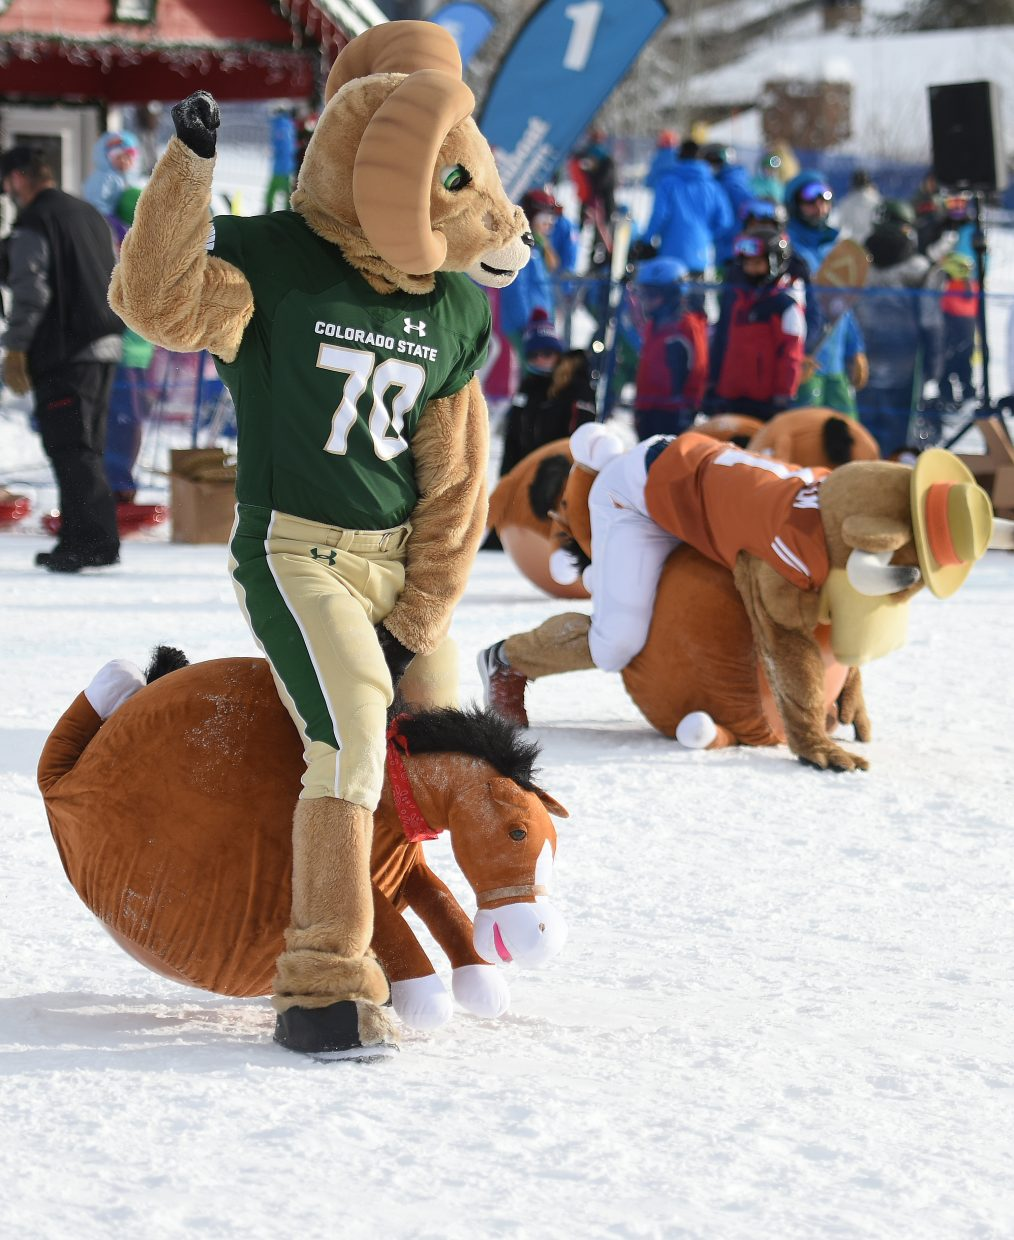 CAM the Ram, from Colorado State University, managed to bounce on his horse better than Hook'em, the mascot from the University of Texas on Saturday at Steamboat Ski Area. About 20 mascots from universities across the country — as close as CSU and as far as Boston College — swarmed the base area Saturday, participating in an afternoon of games and contests. CAM's bouncing prowess gave him an edge over his long-horned friend, but it wasn't enough to win the day. Alphie, a wolf from University of Nevada, placed first for the second consecutive year.